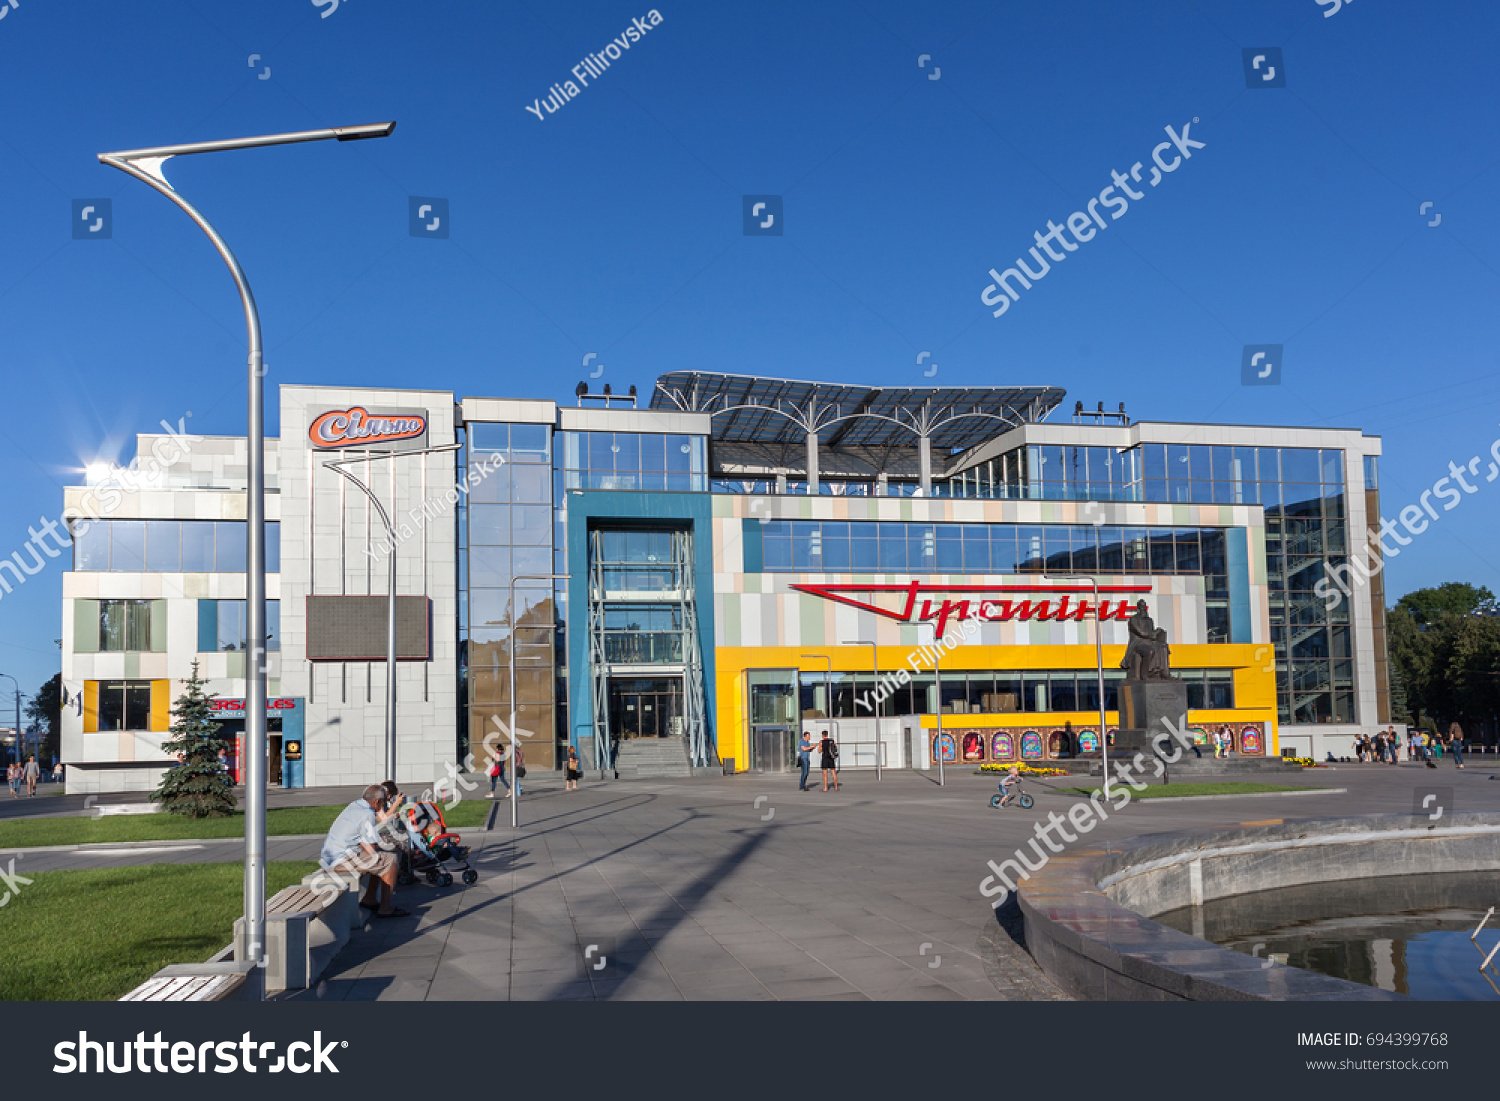 Shopping centers of Ukraine: a selection of sites